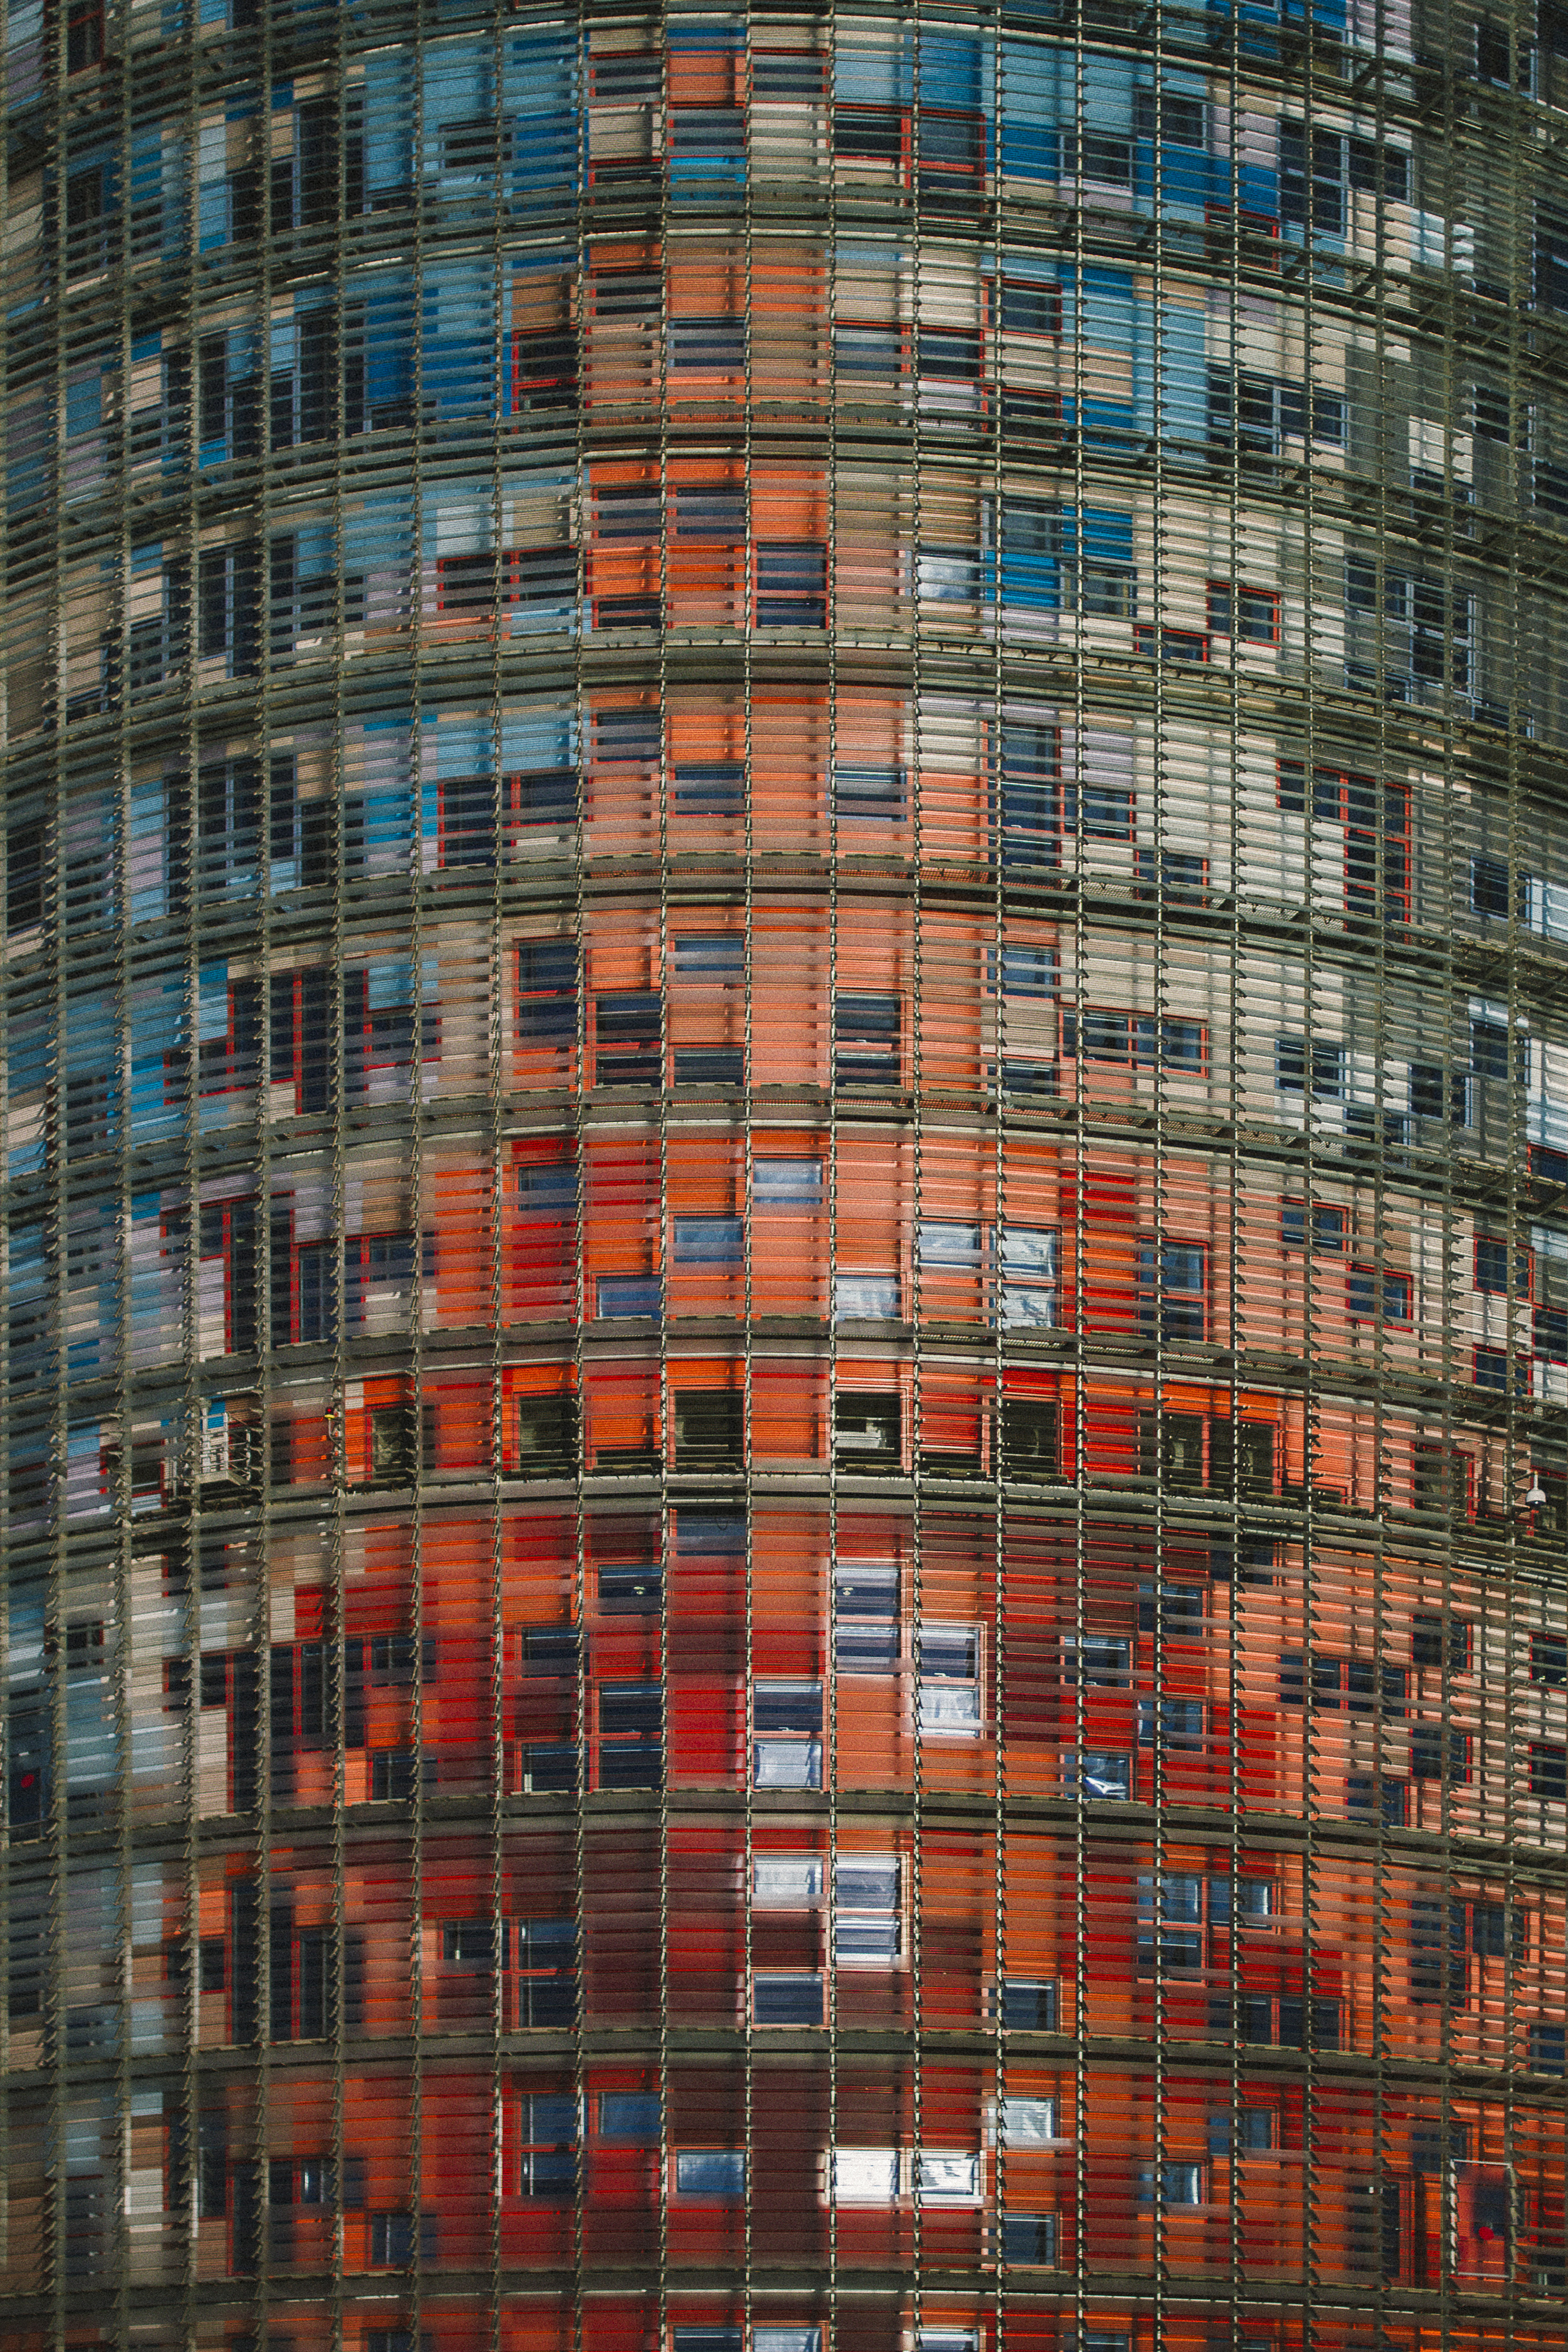 Torre Agbar